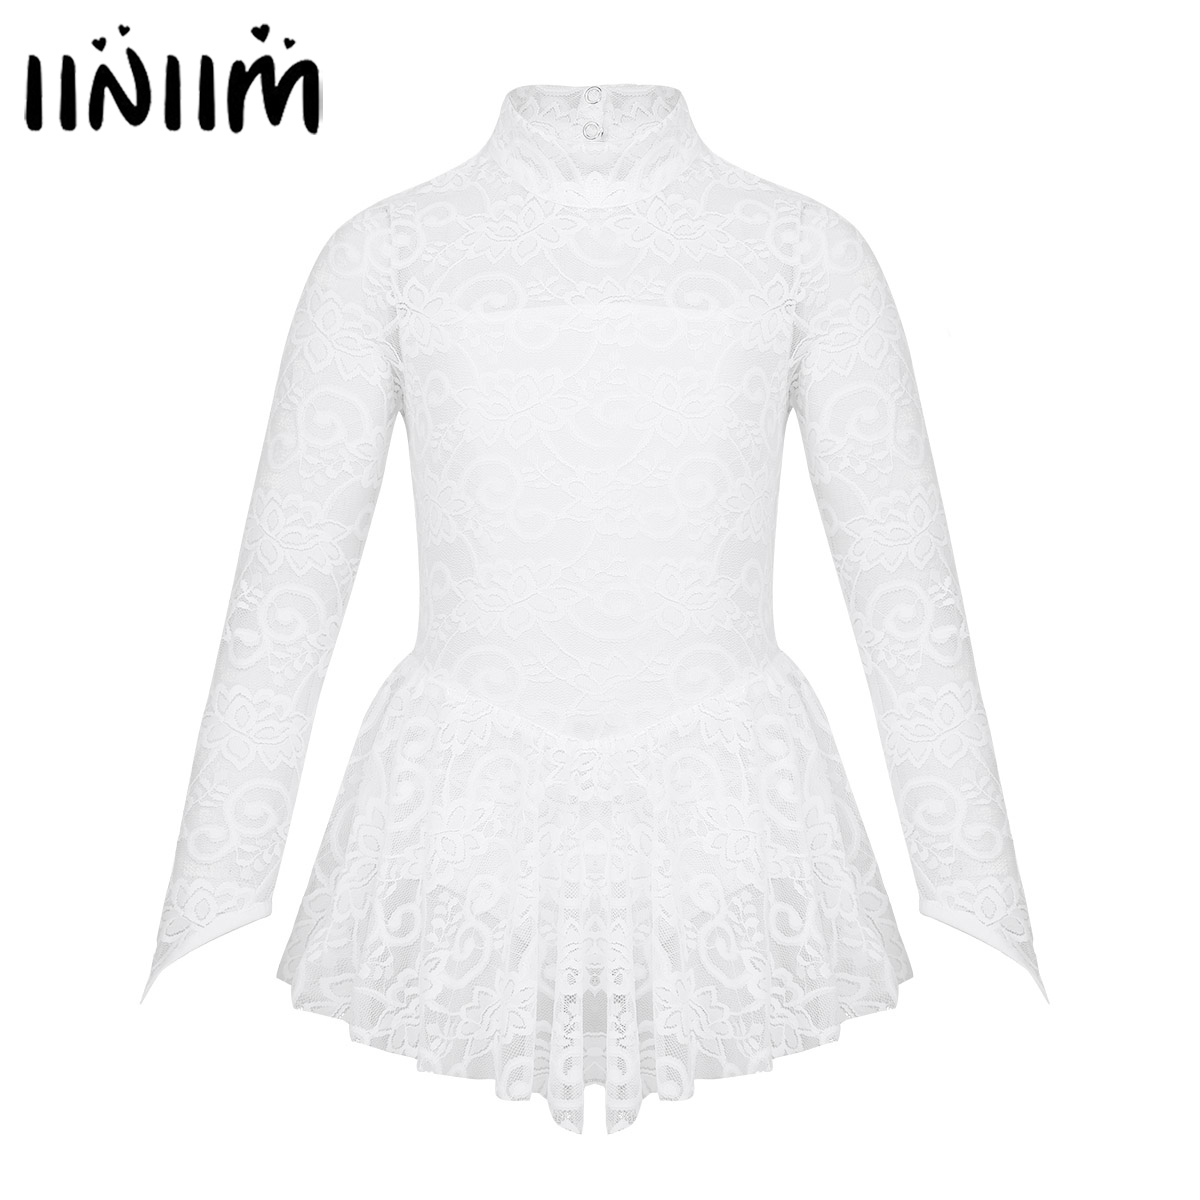 iiniim Kids Dancewear Floral Lace Figure Ice Skating Roller Dance Dress Gymnastics Leotard for Girls Contemporary Dance Costumes